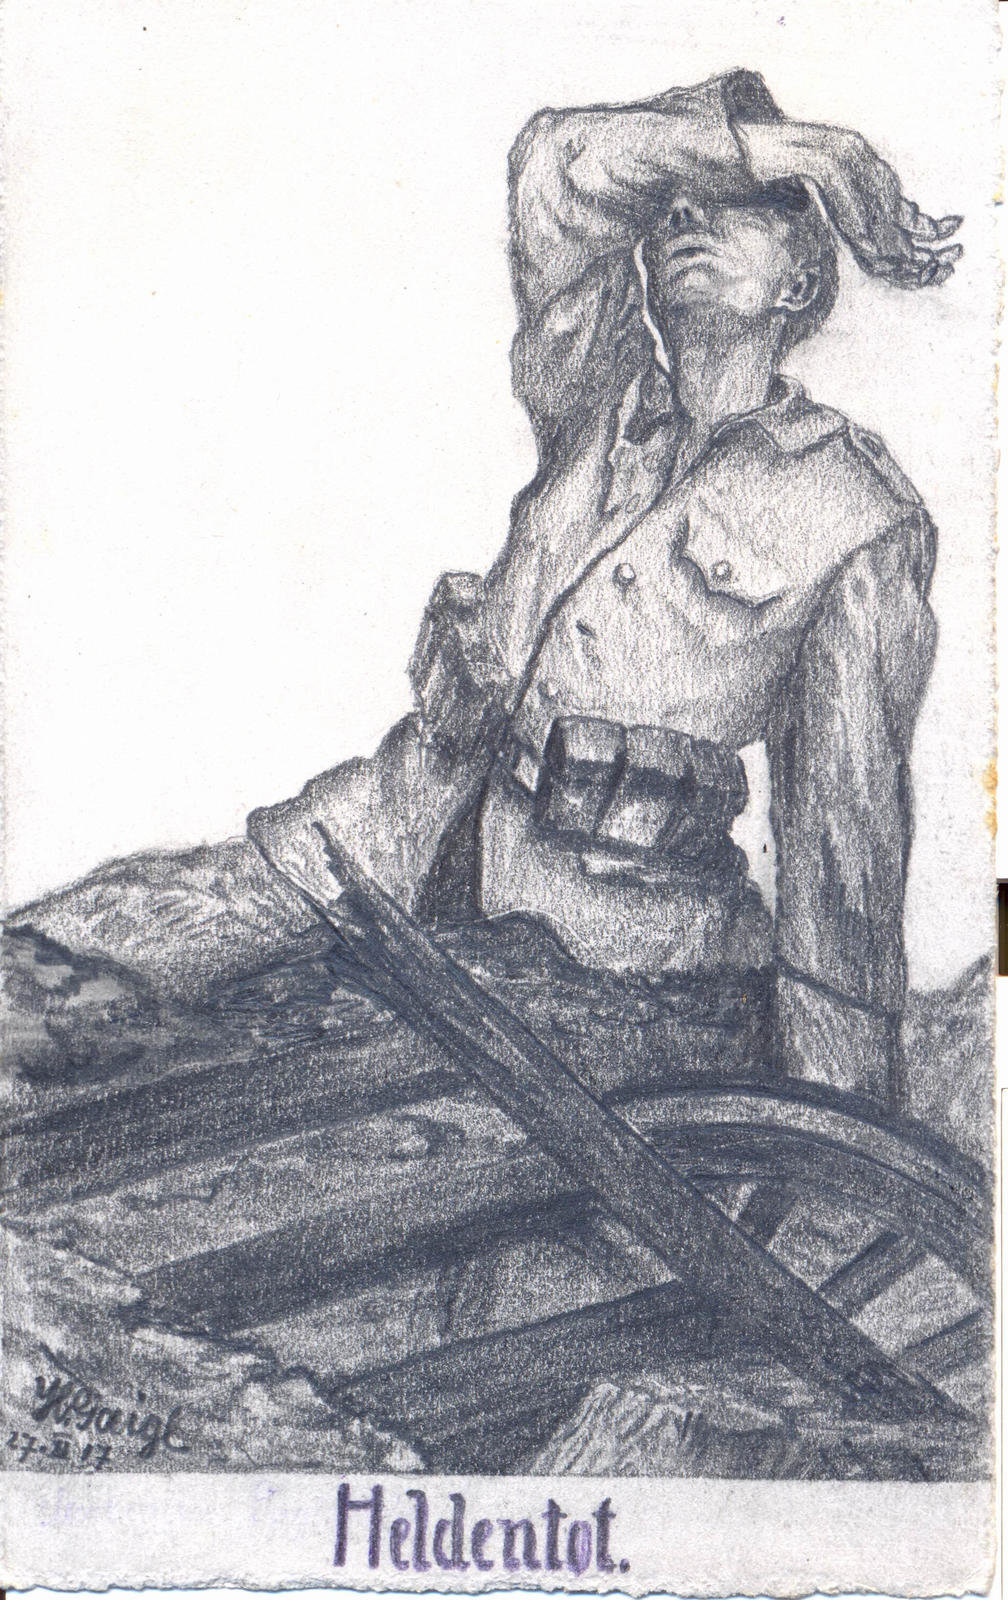 Postcard 'The Heroes death', pencil sketch by Hans Gaigl, 27 November 1917, Mörchingen , Europeana 1914-1918 / Günter Gaigl, CC BY-SA